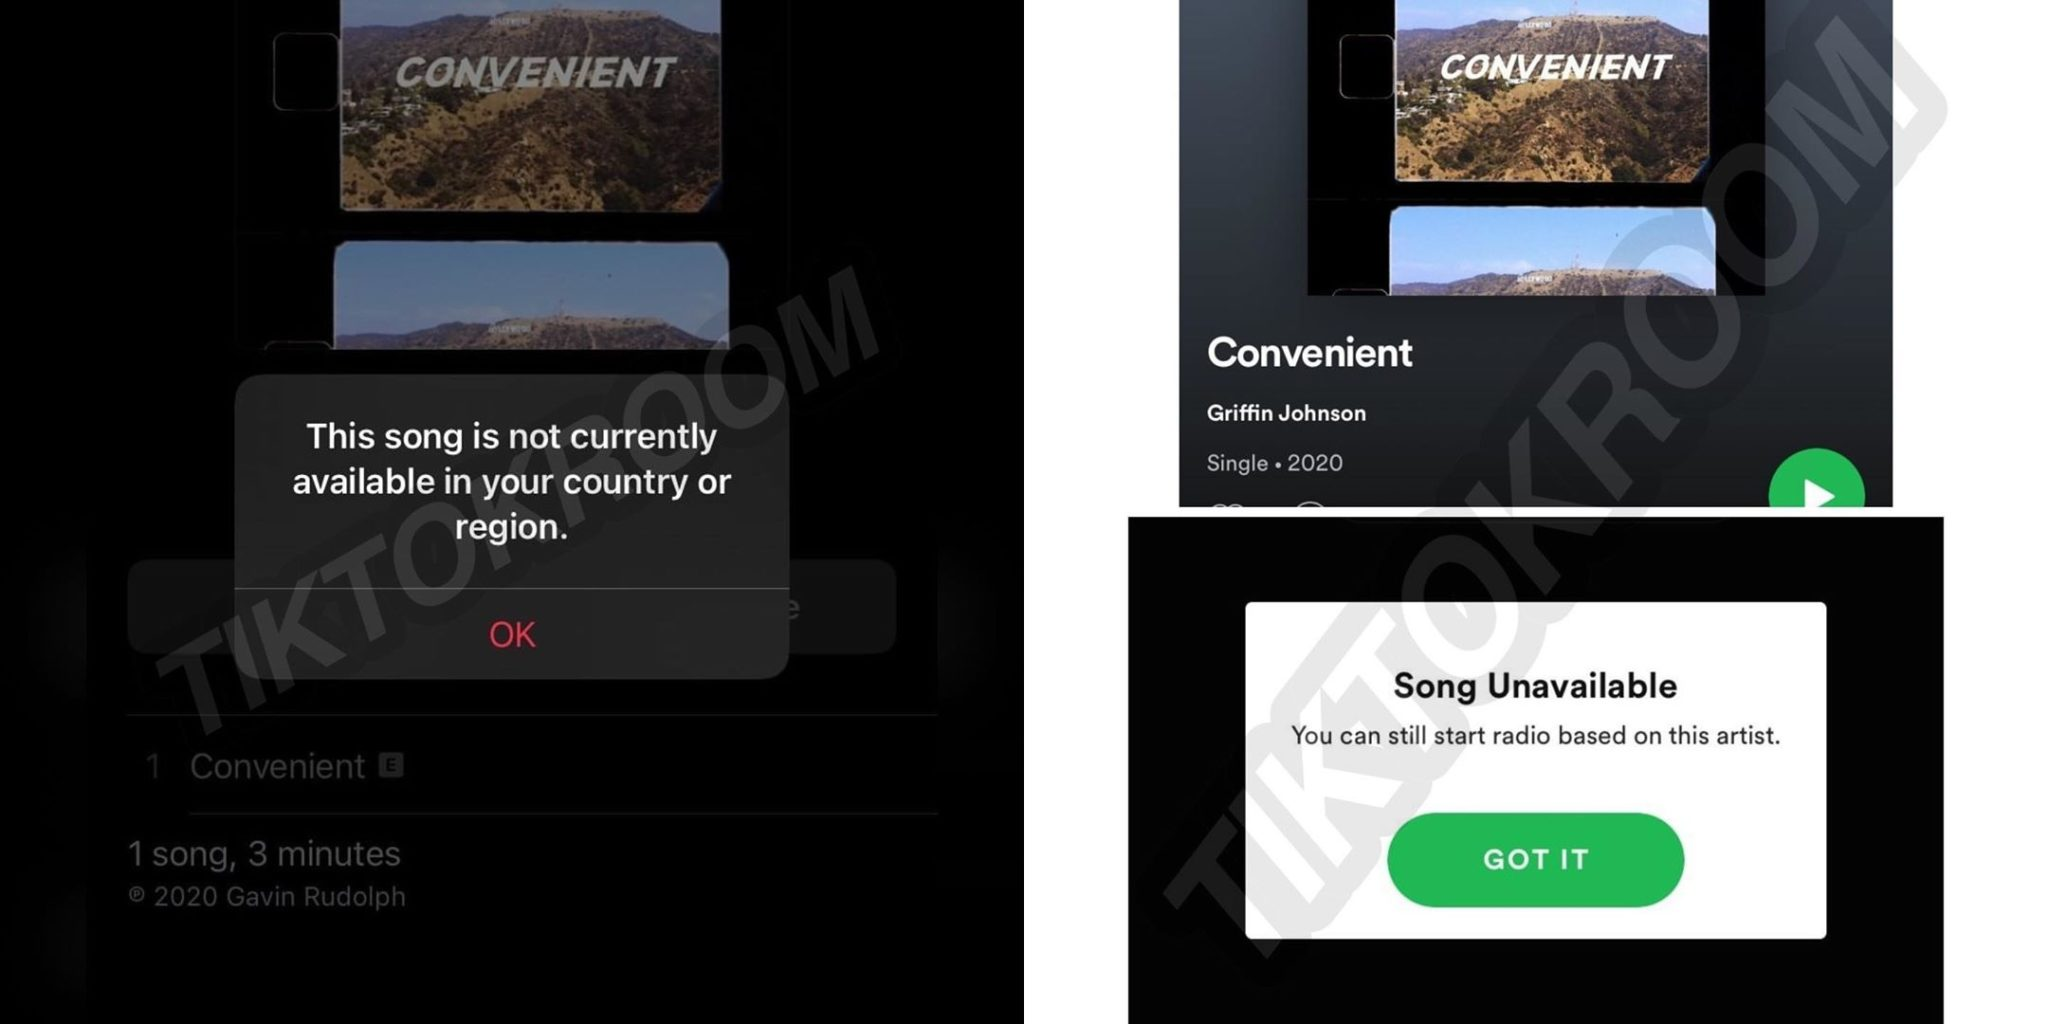 Griffin Johnson deleted Convenient Spotify Apple Music